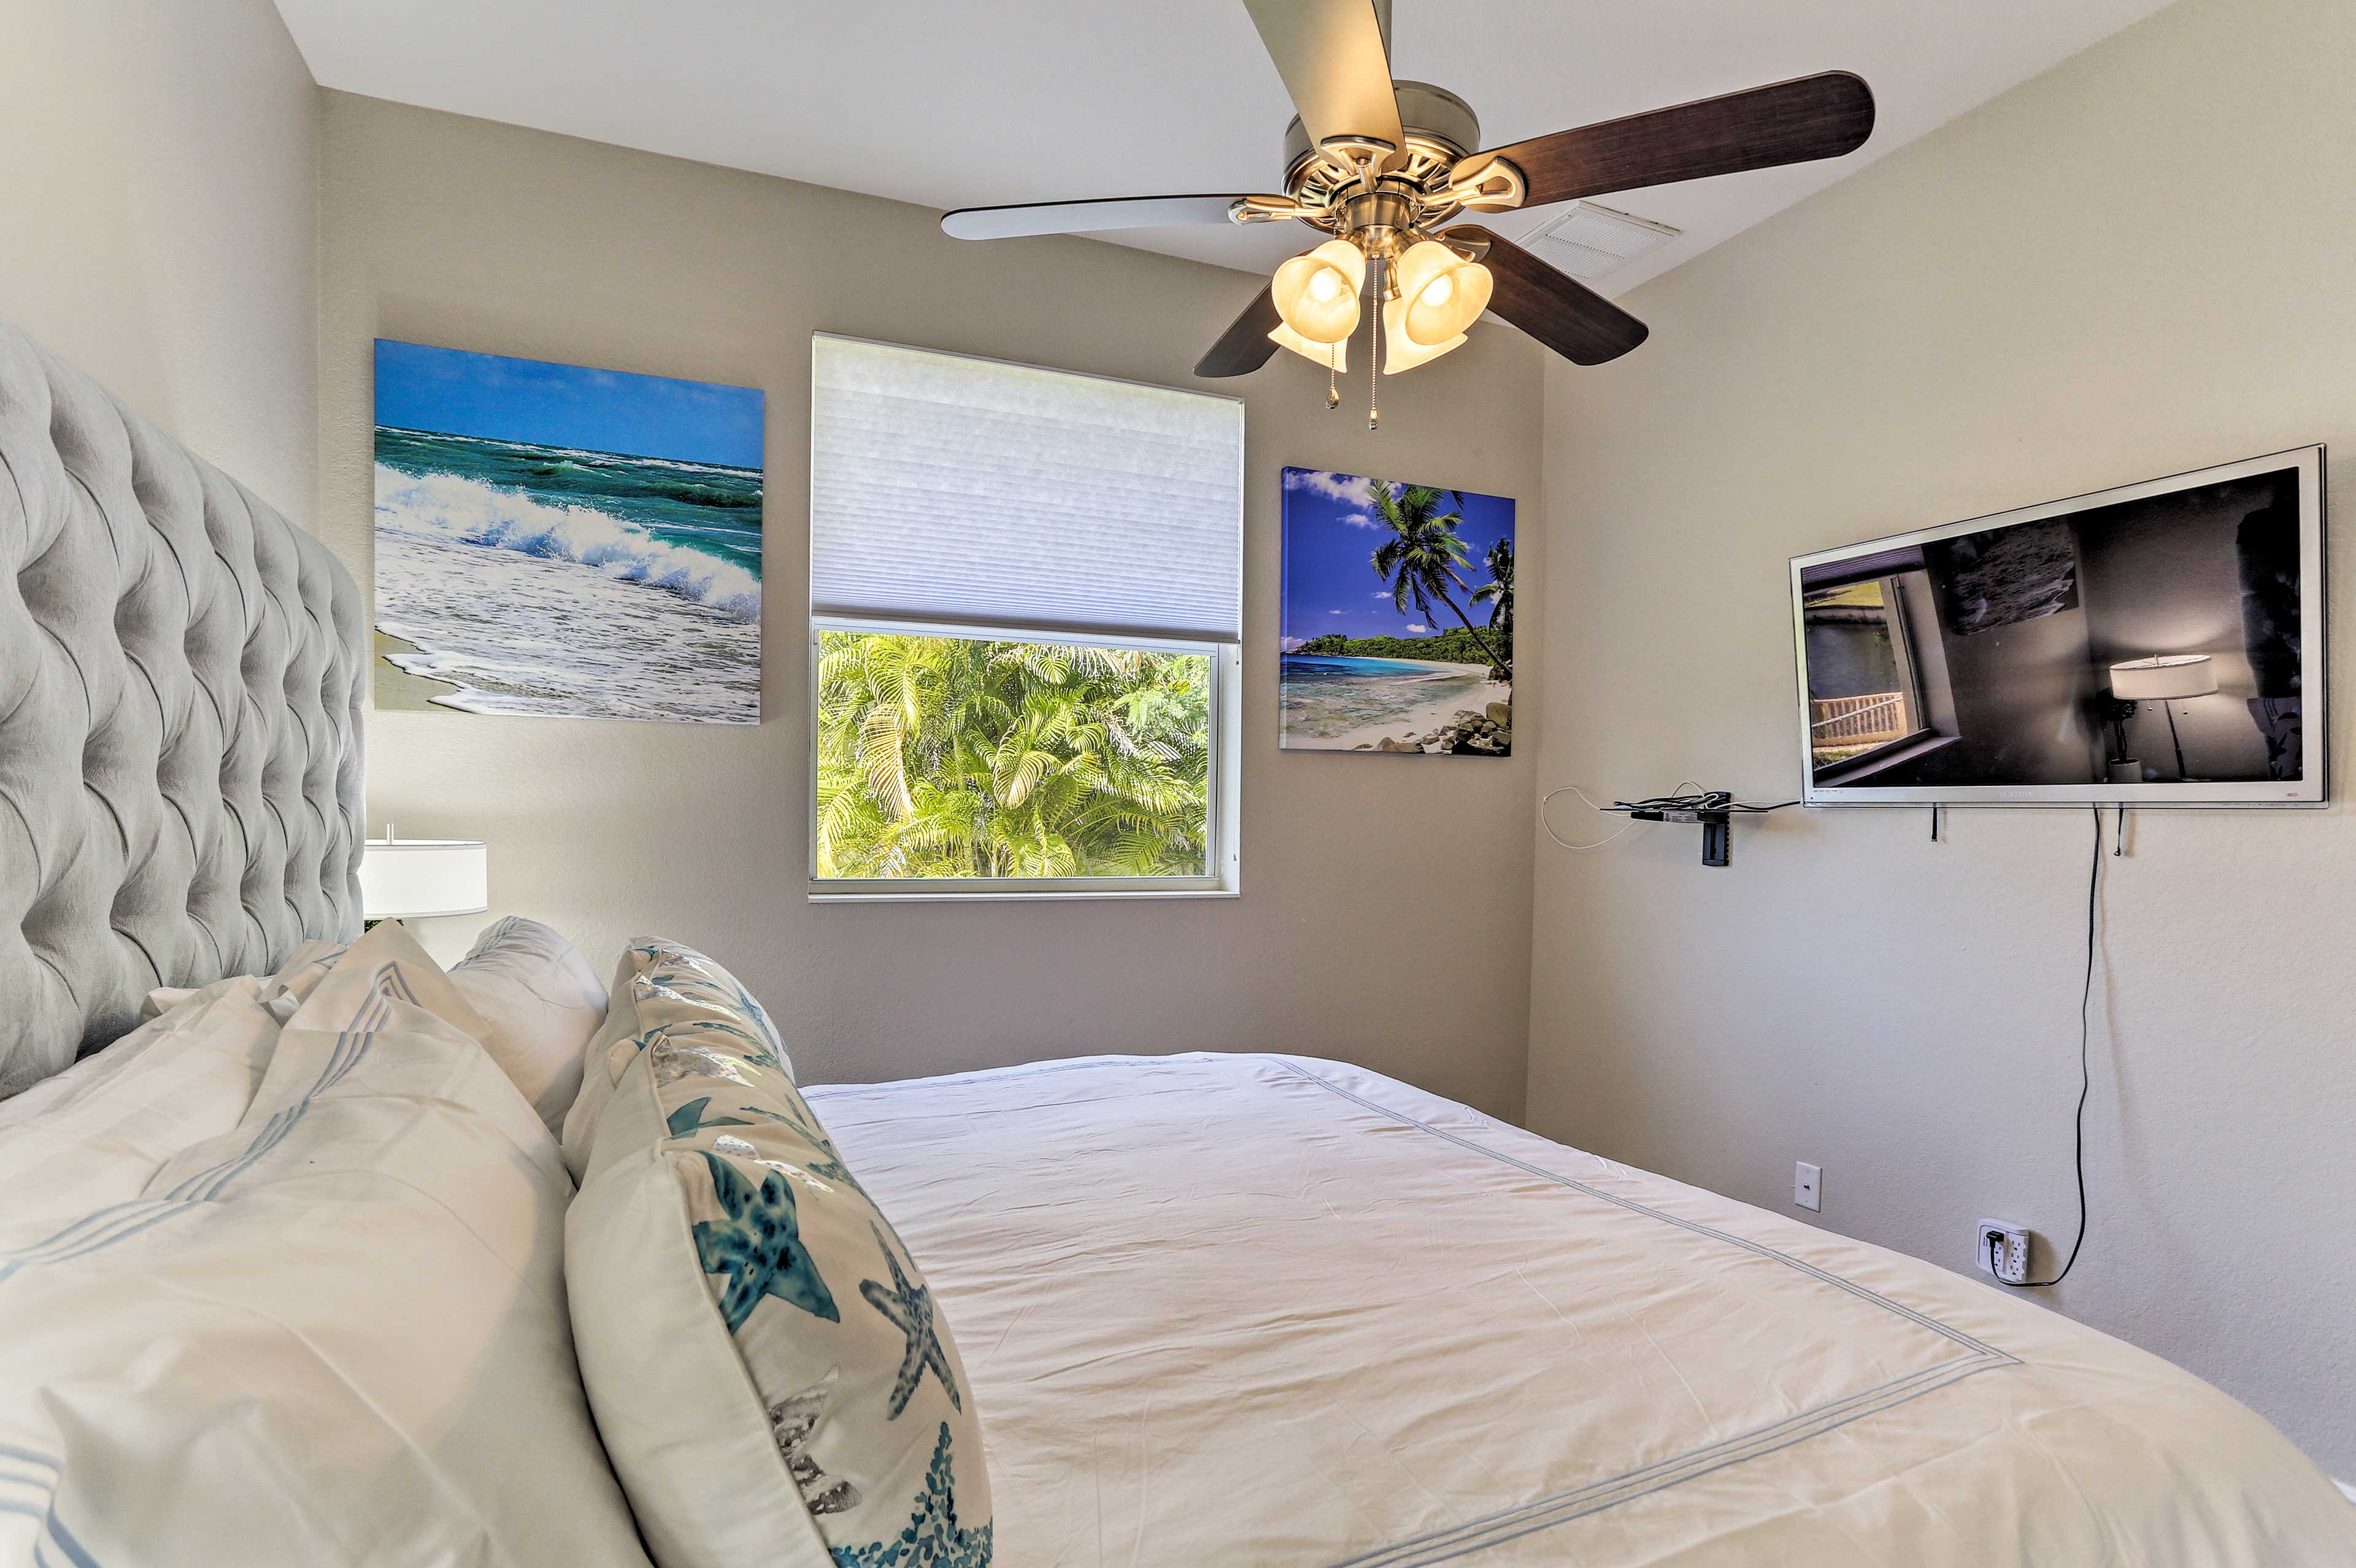 Leave the ceiling fan on for a cool and comfortable slumber.